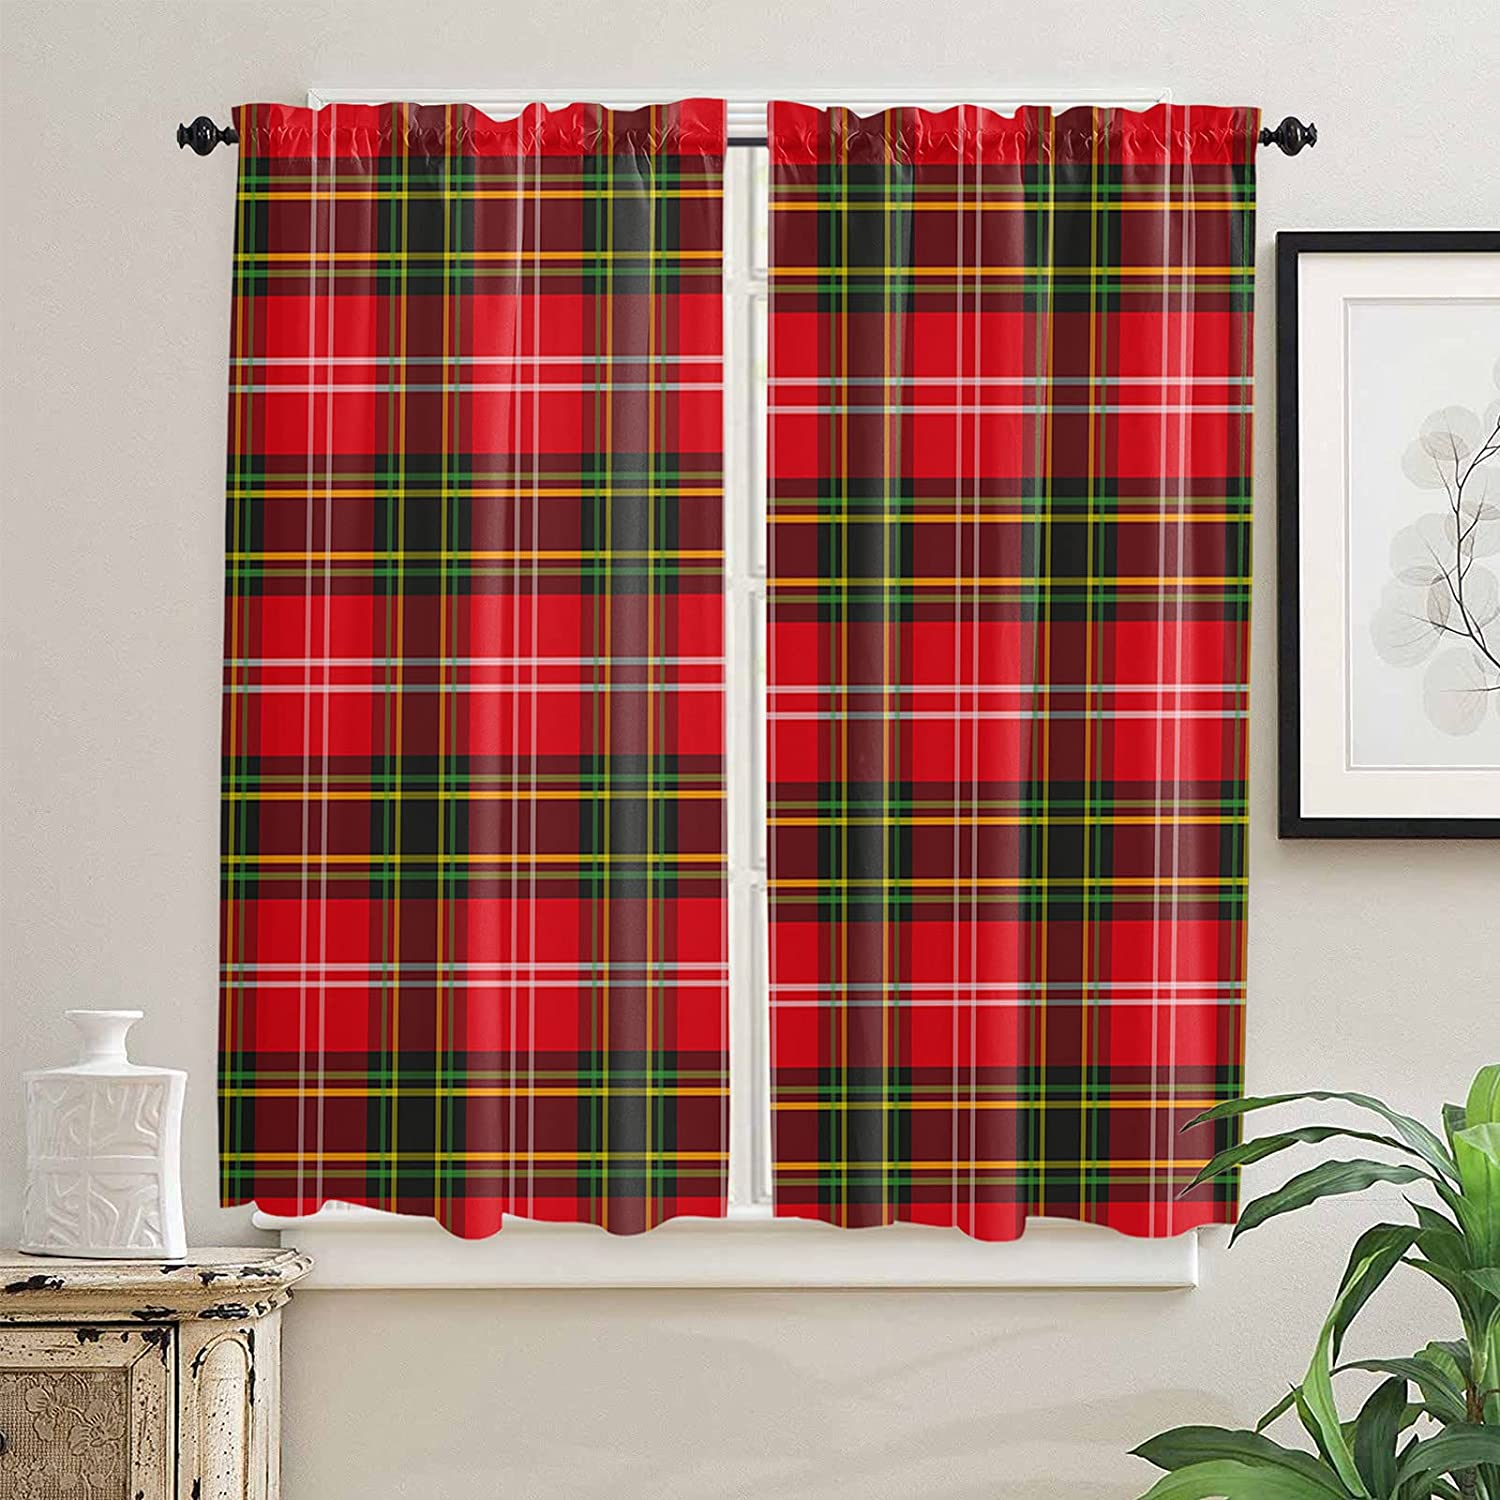 Christmas Kitchen Curtains 63 Inch Length G for free Windows Gorgeous Red and